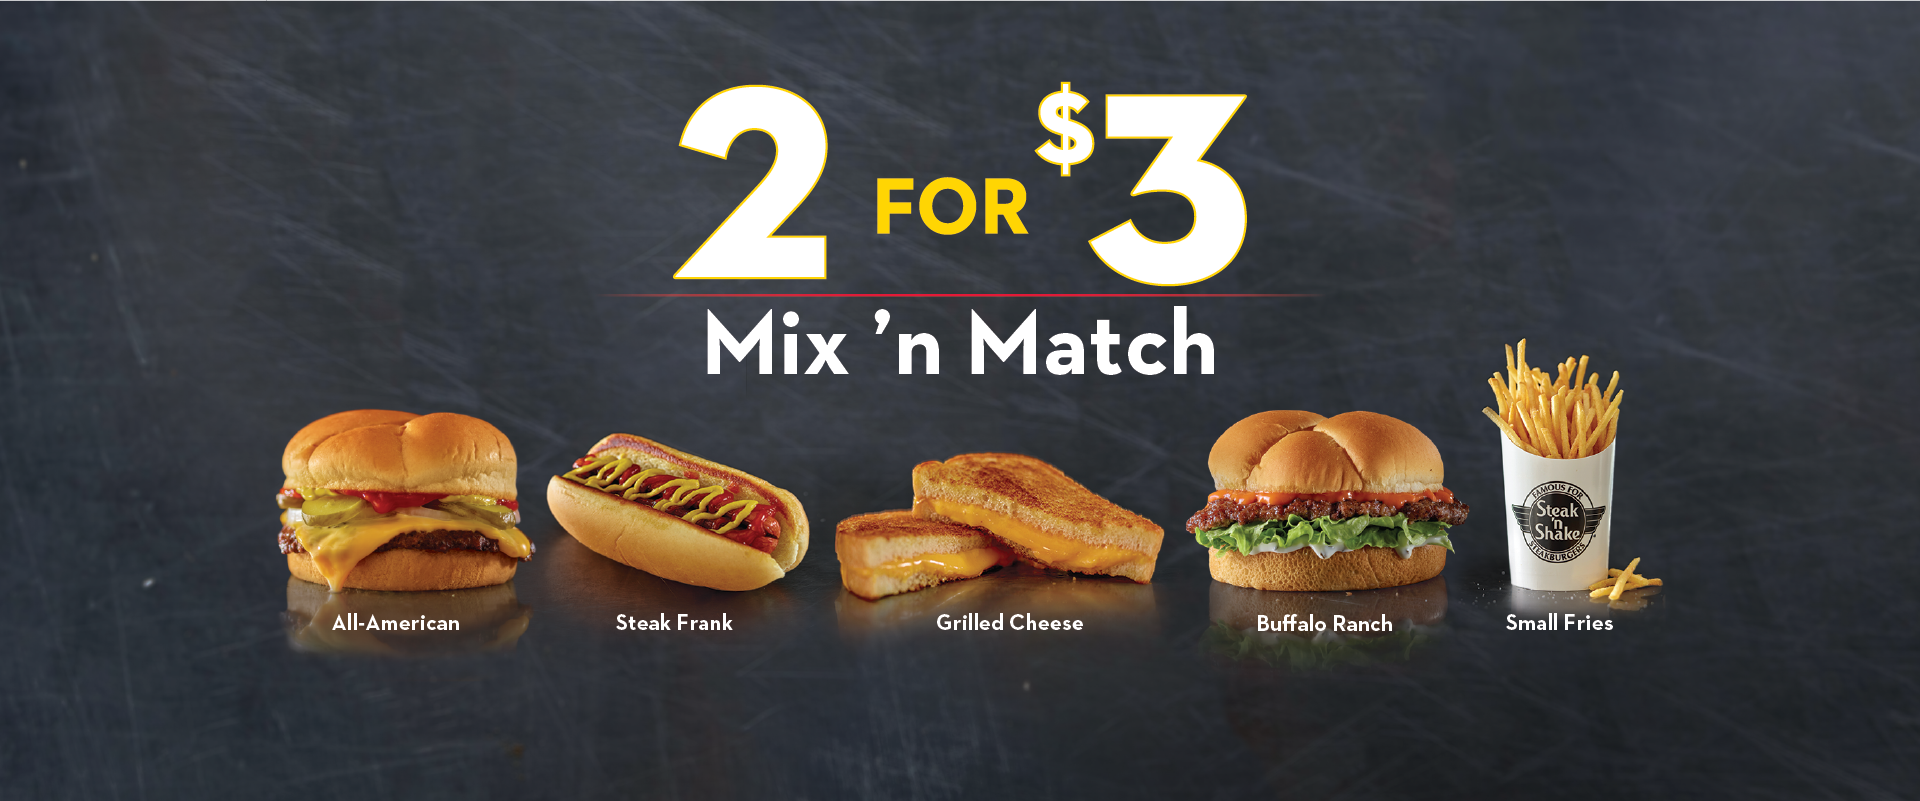 2 FOR $3 MIX 'N MATCH